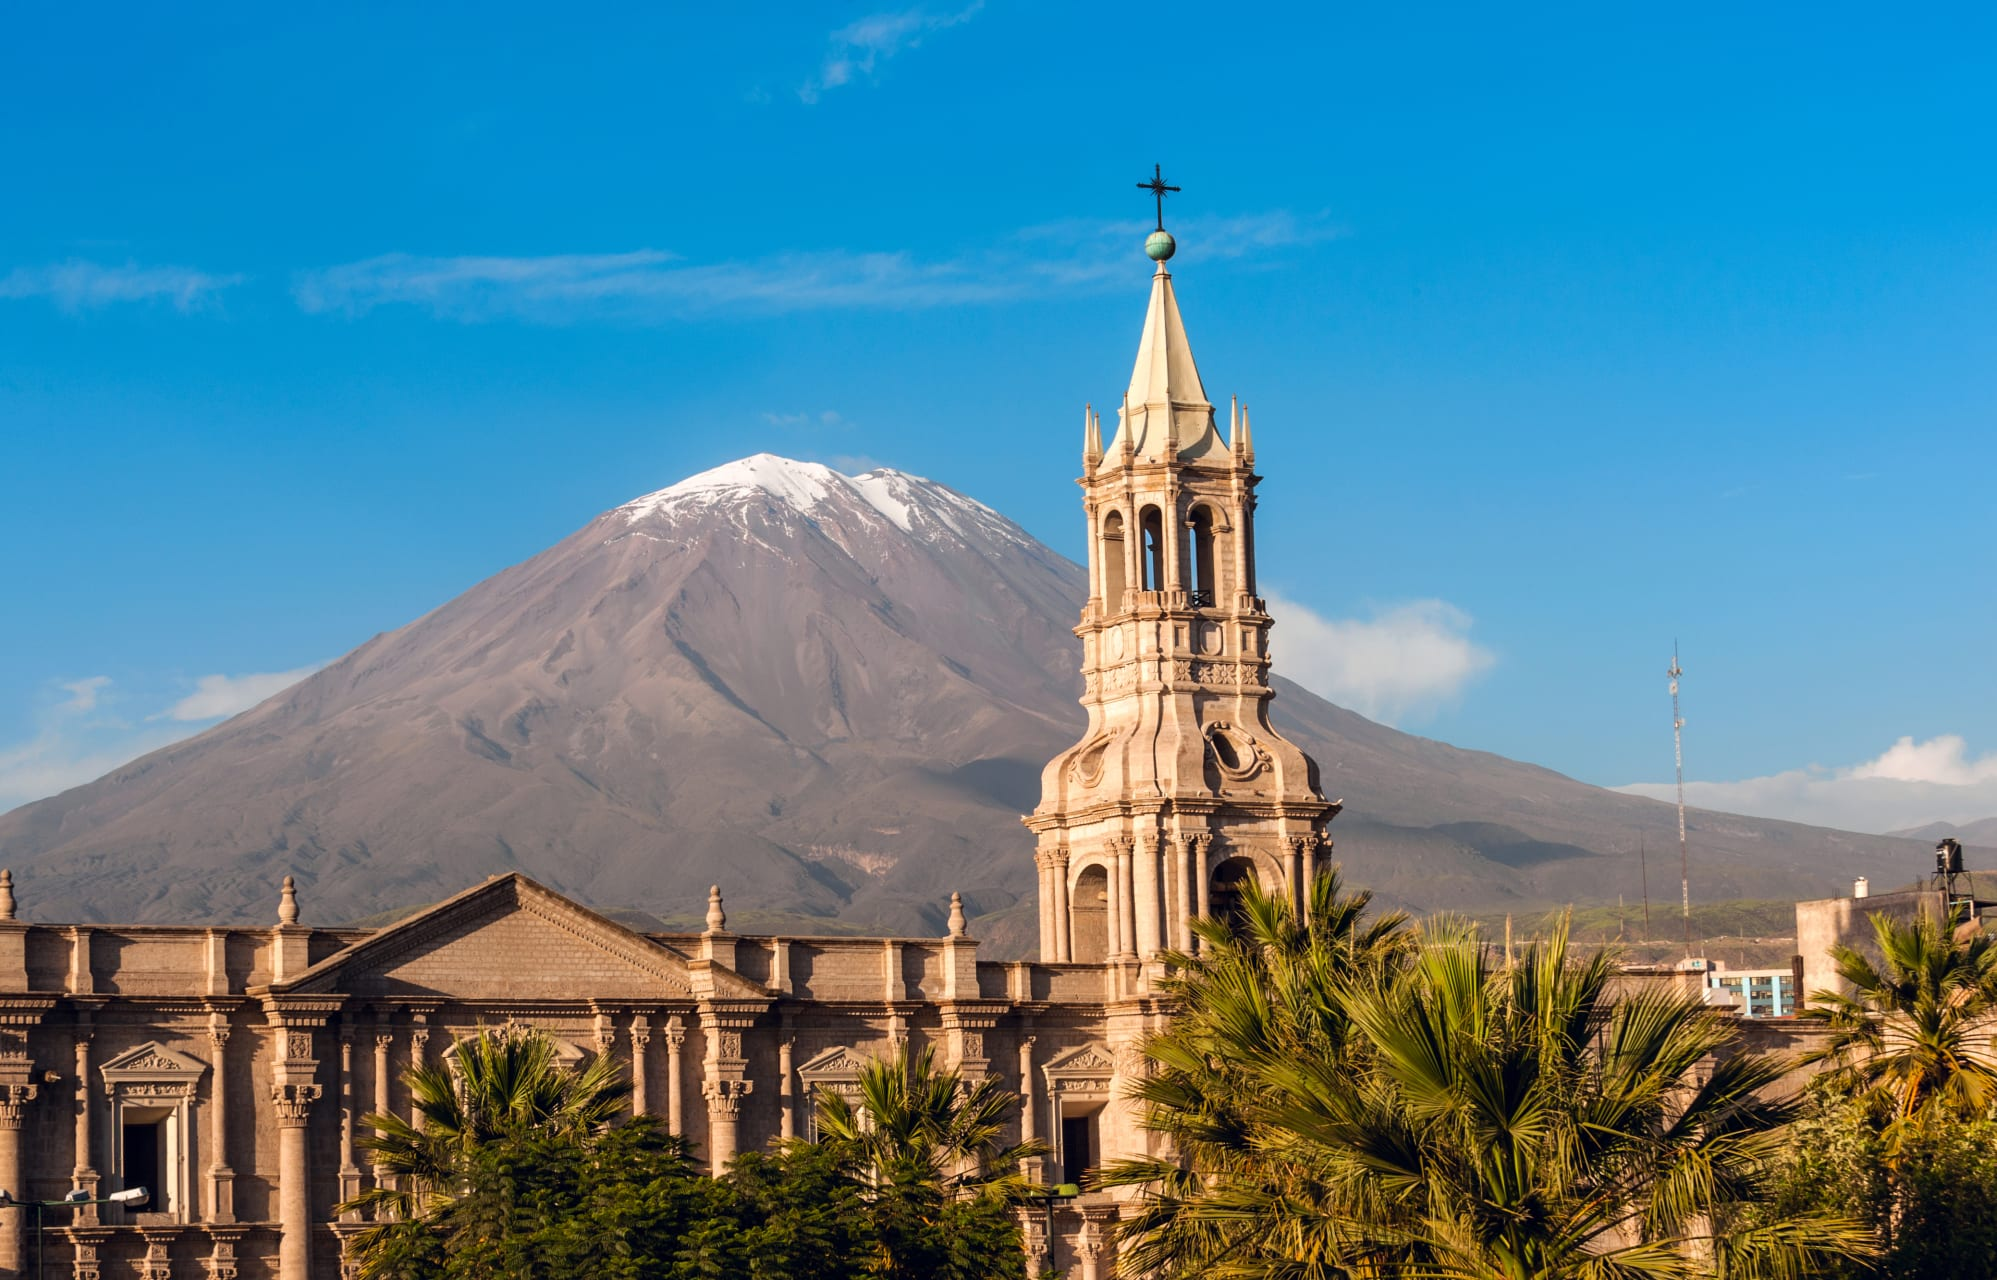 Arequipa cover image